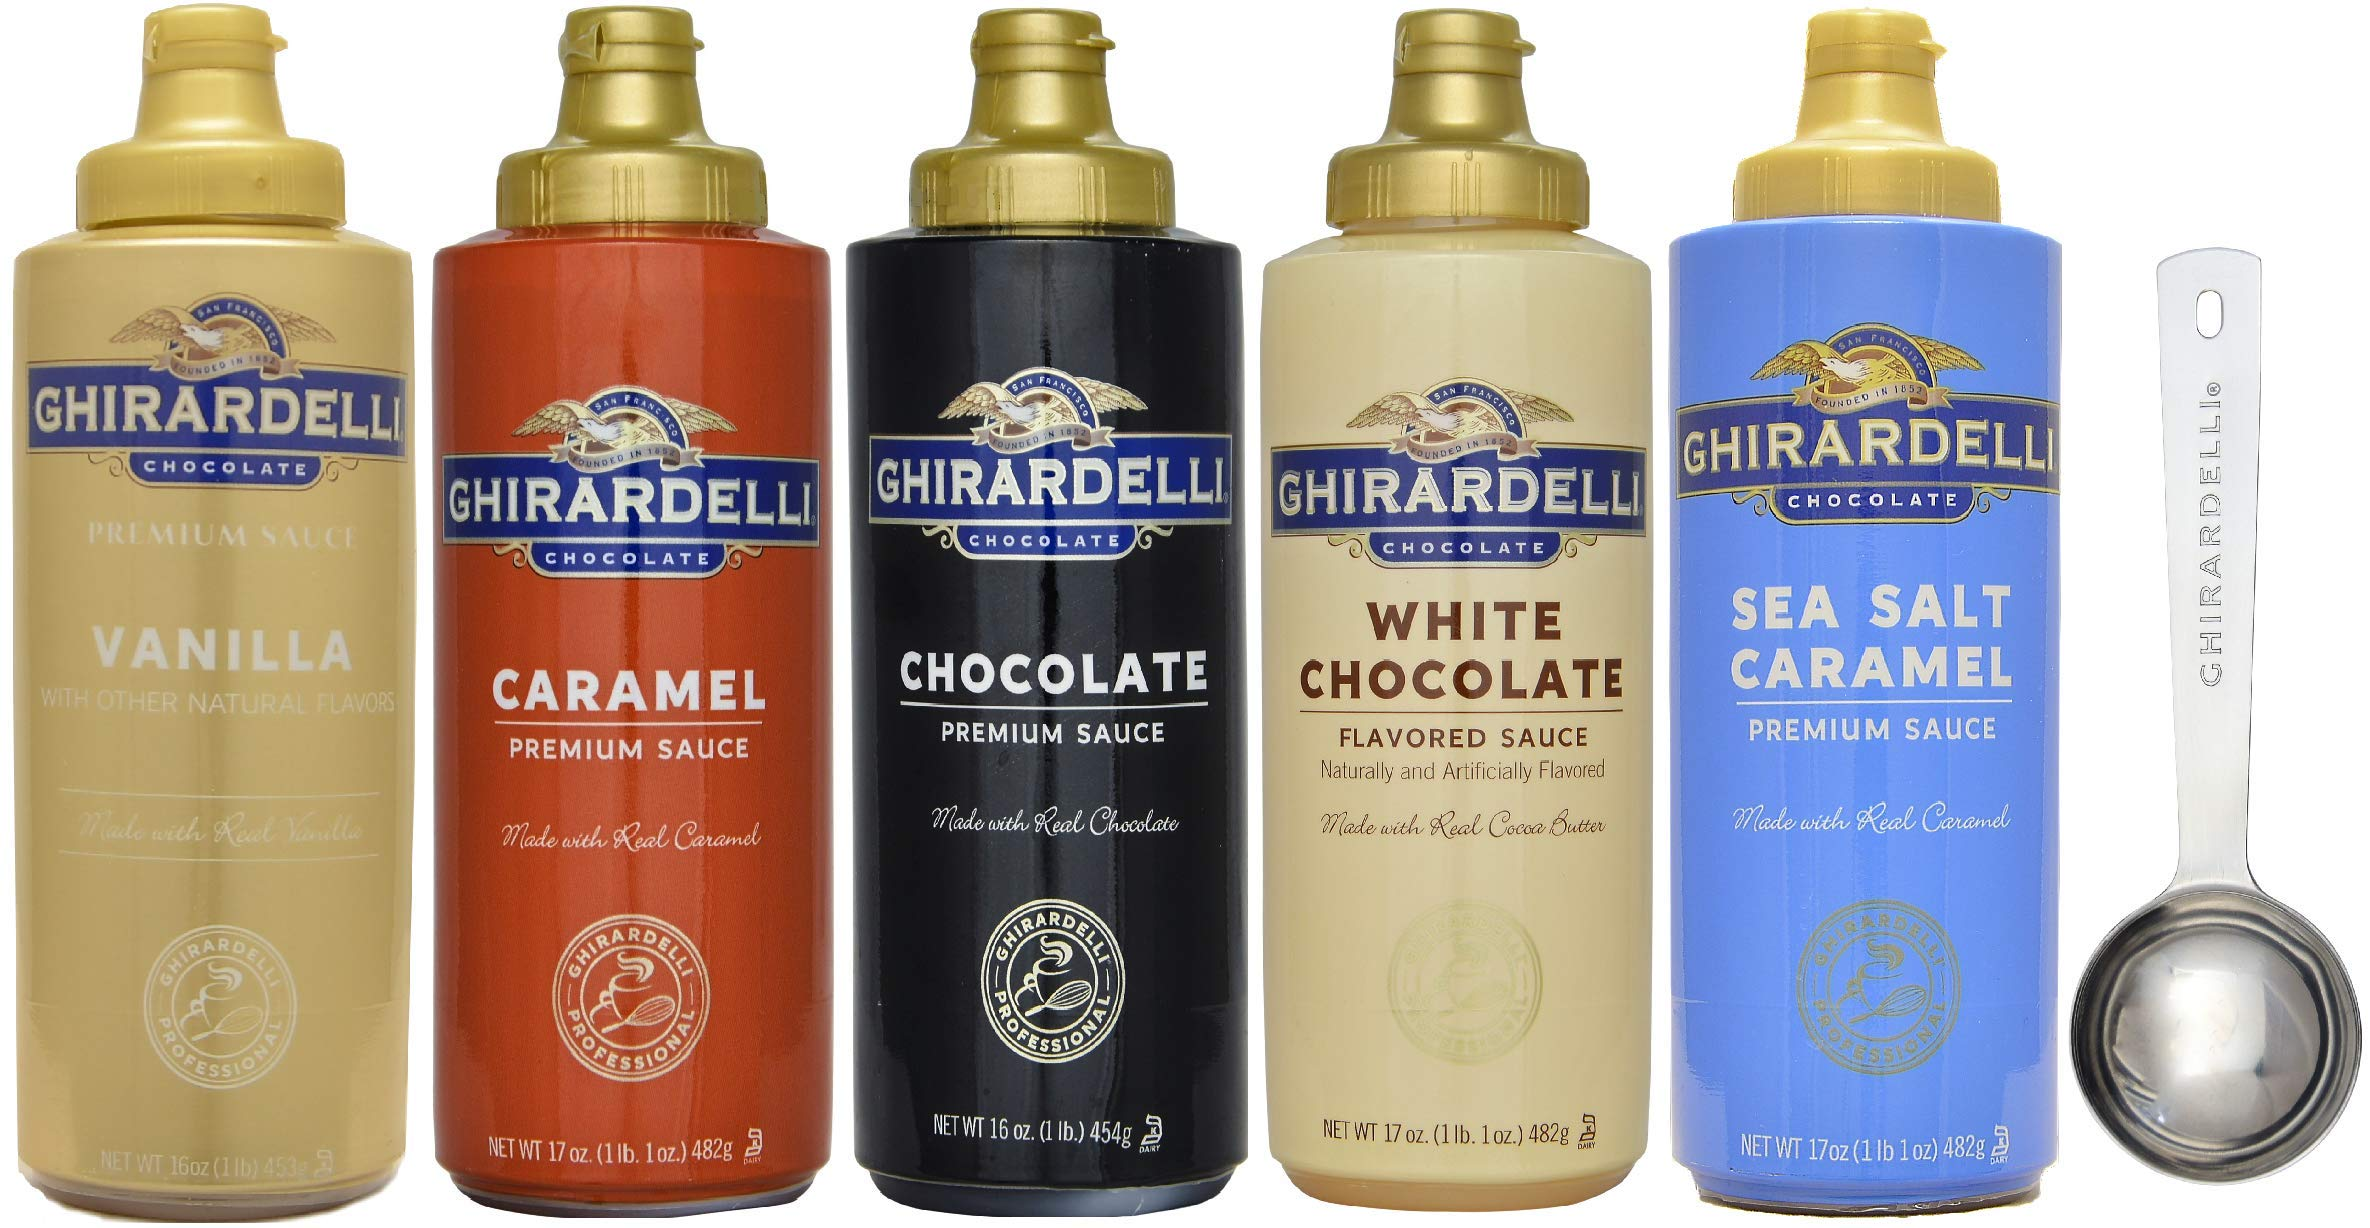 Ghirardelli - 16 Ounce Black Label, 16 Ounce Vanilla, 17 Ounce White, 17 Ounce Caramel, 17 Ounce Sea Salt Caramel Flavored Sauce (Set of 5) - with Limited Edition Measuring Spoon by Ghirardelli (Image #1)